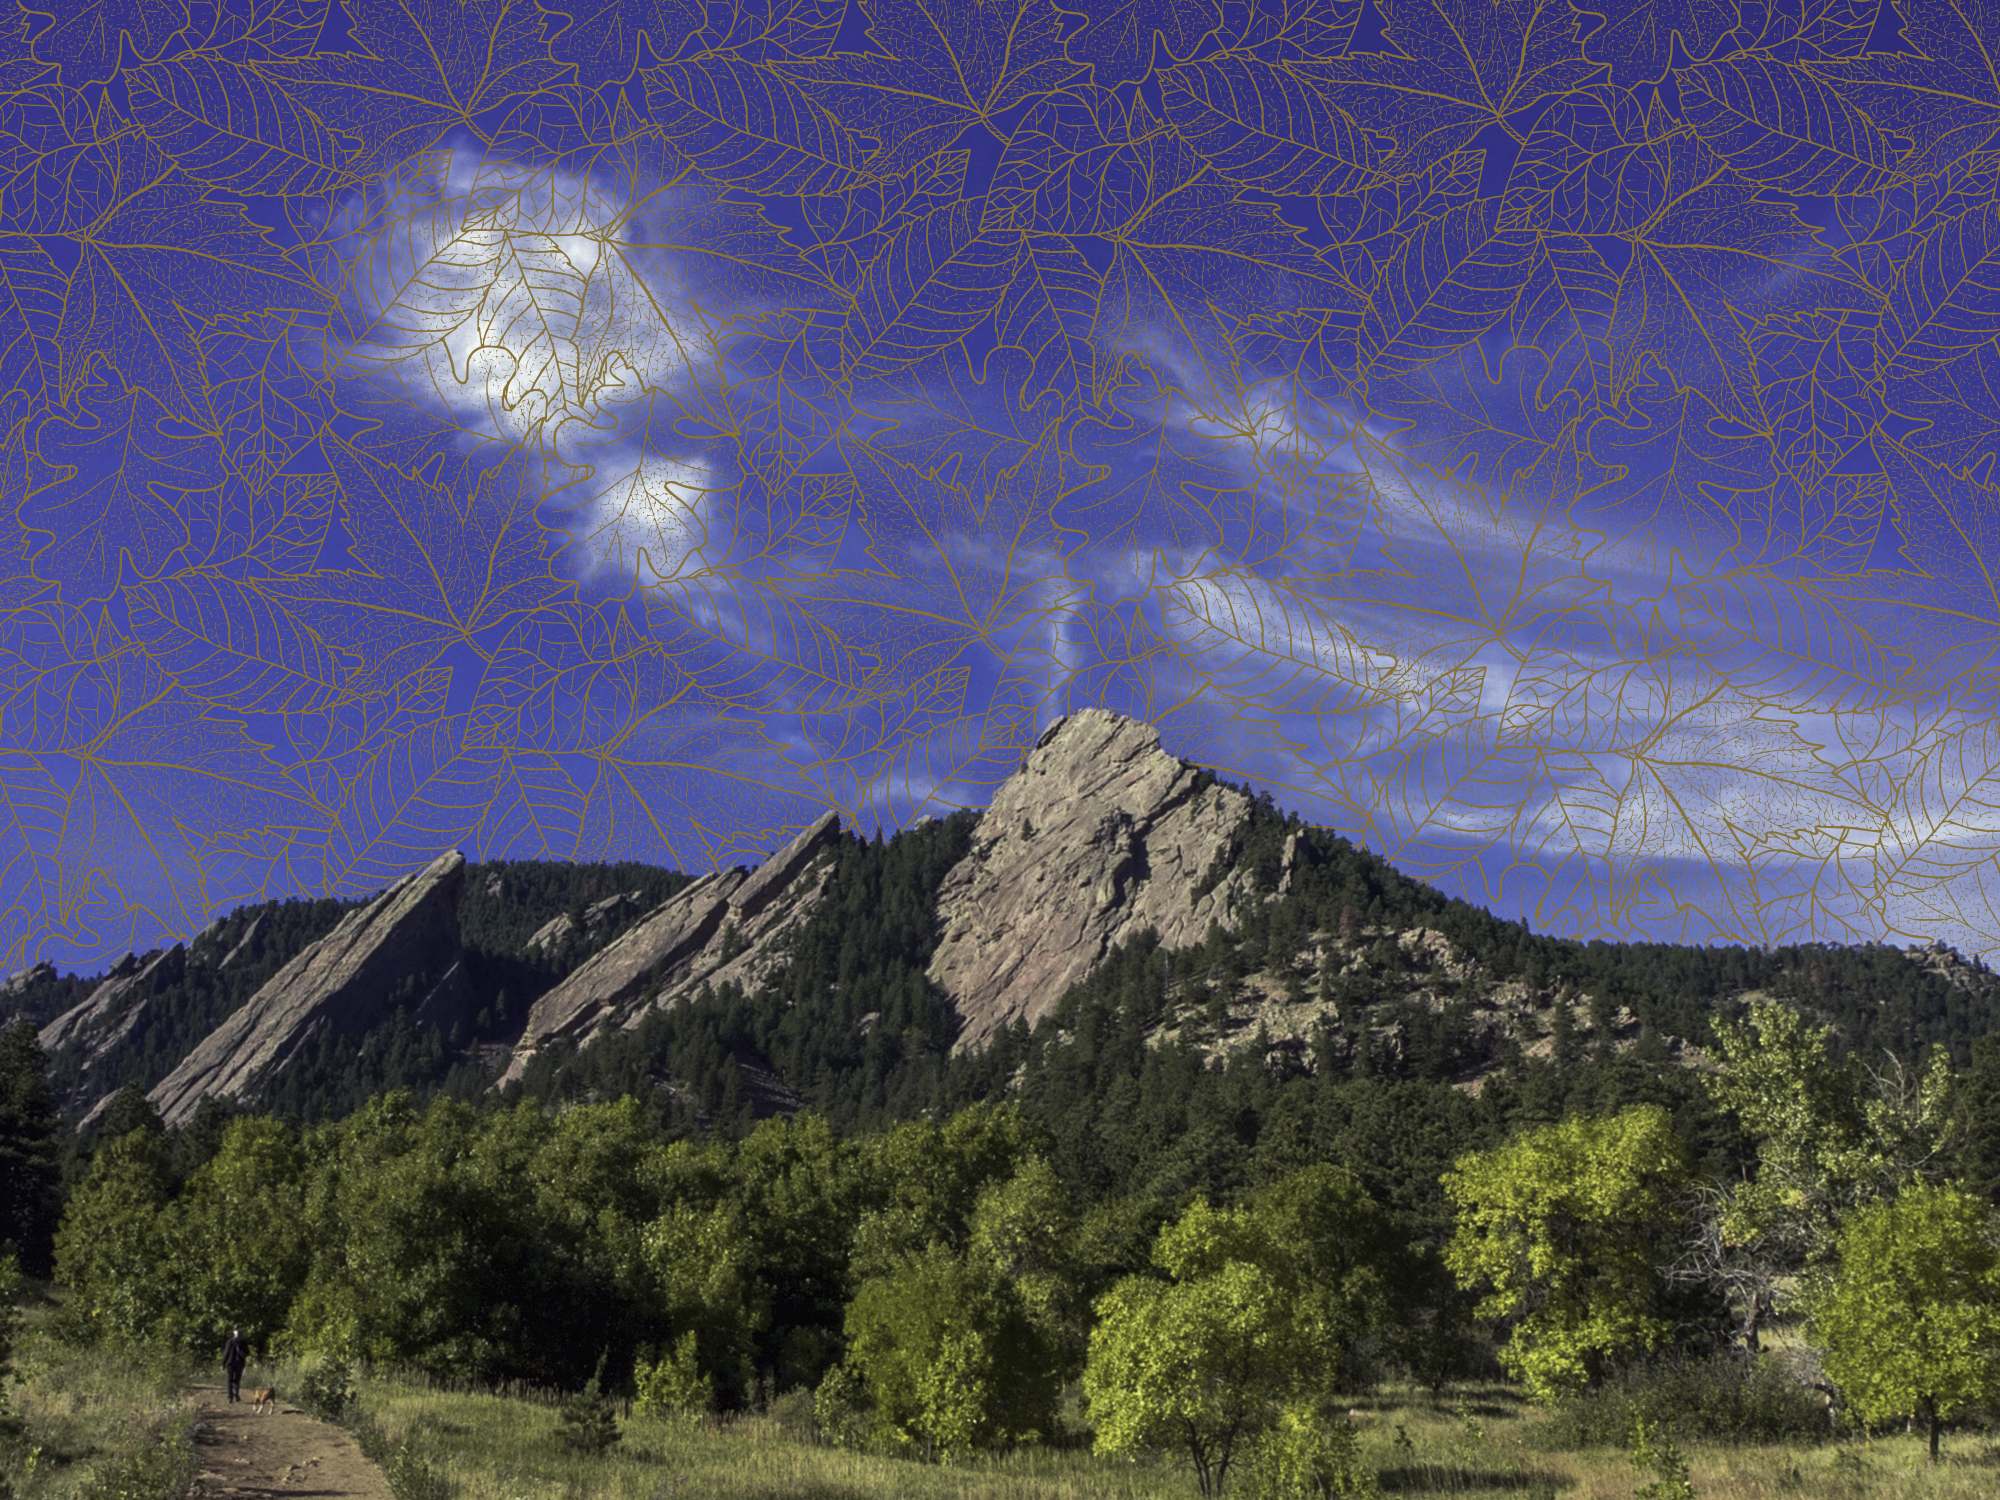 fall test prep courses, classes, private tutoring and schedule in Boulder, CO